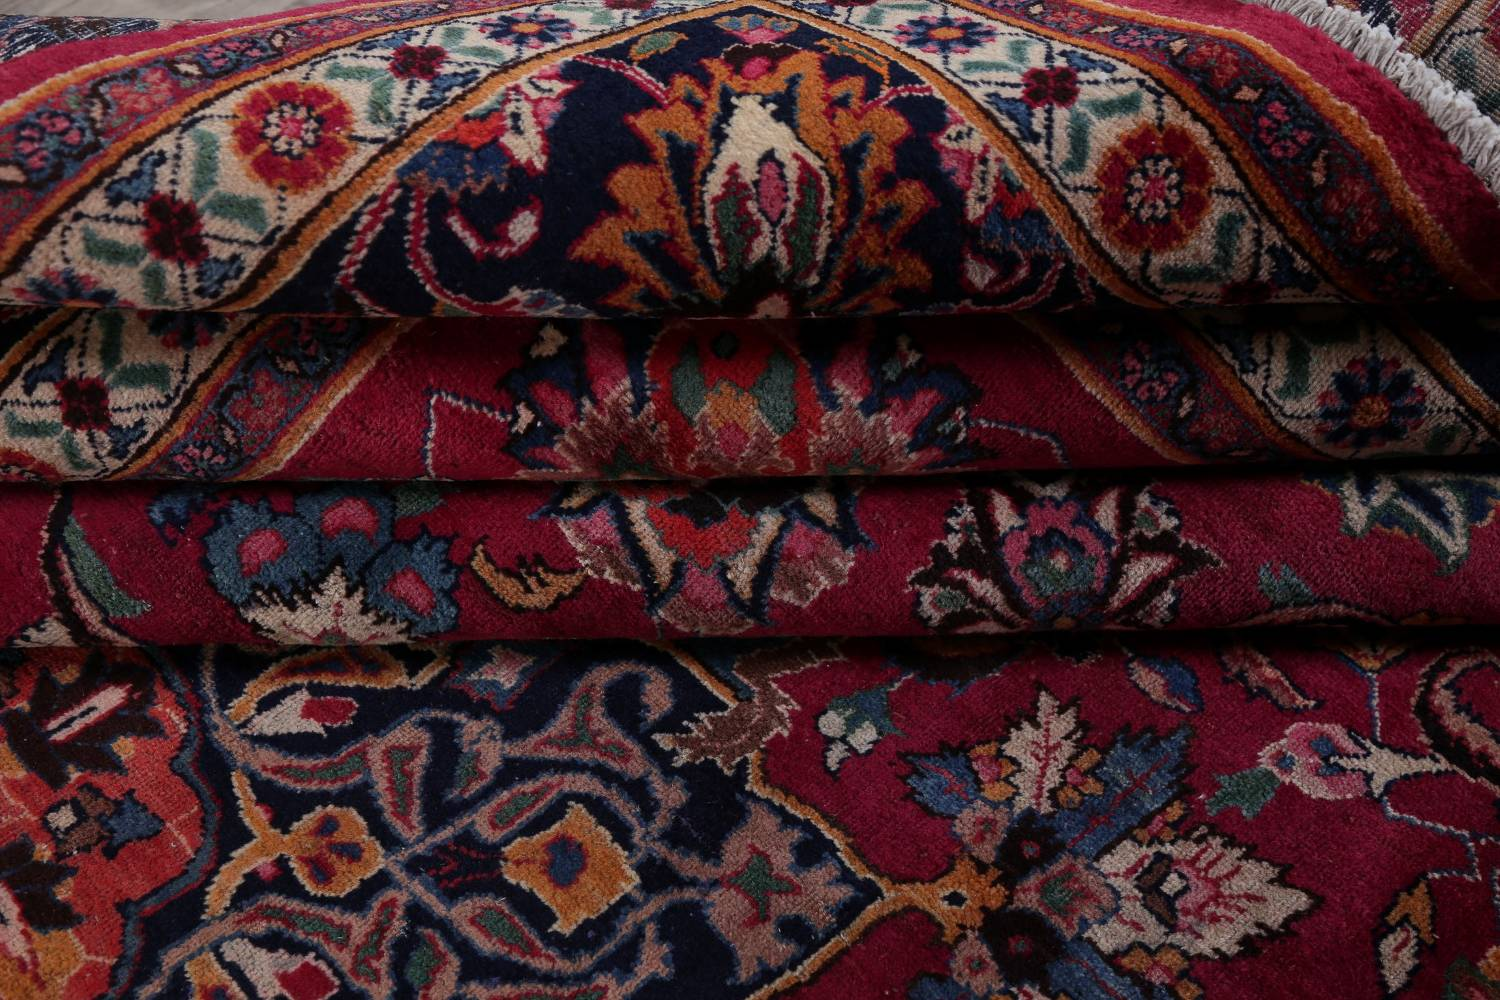 Antique Geometric Mashad Persian Hand-Knotted 10x13 Wool Area Rug image 16